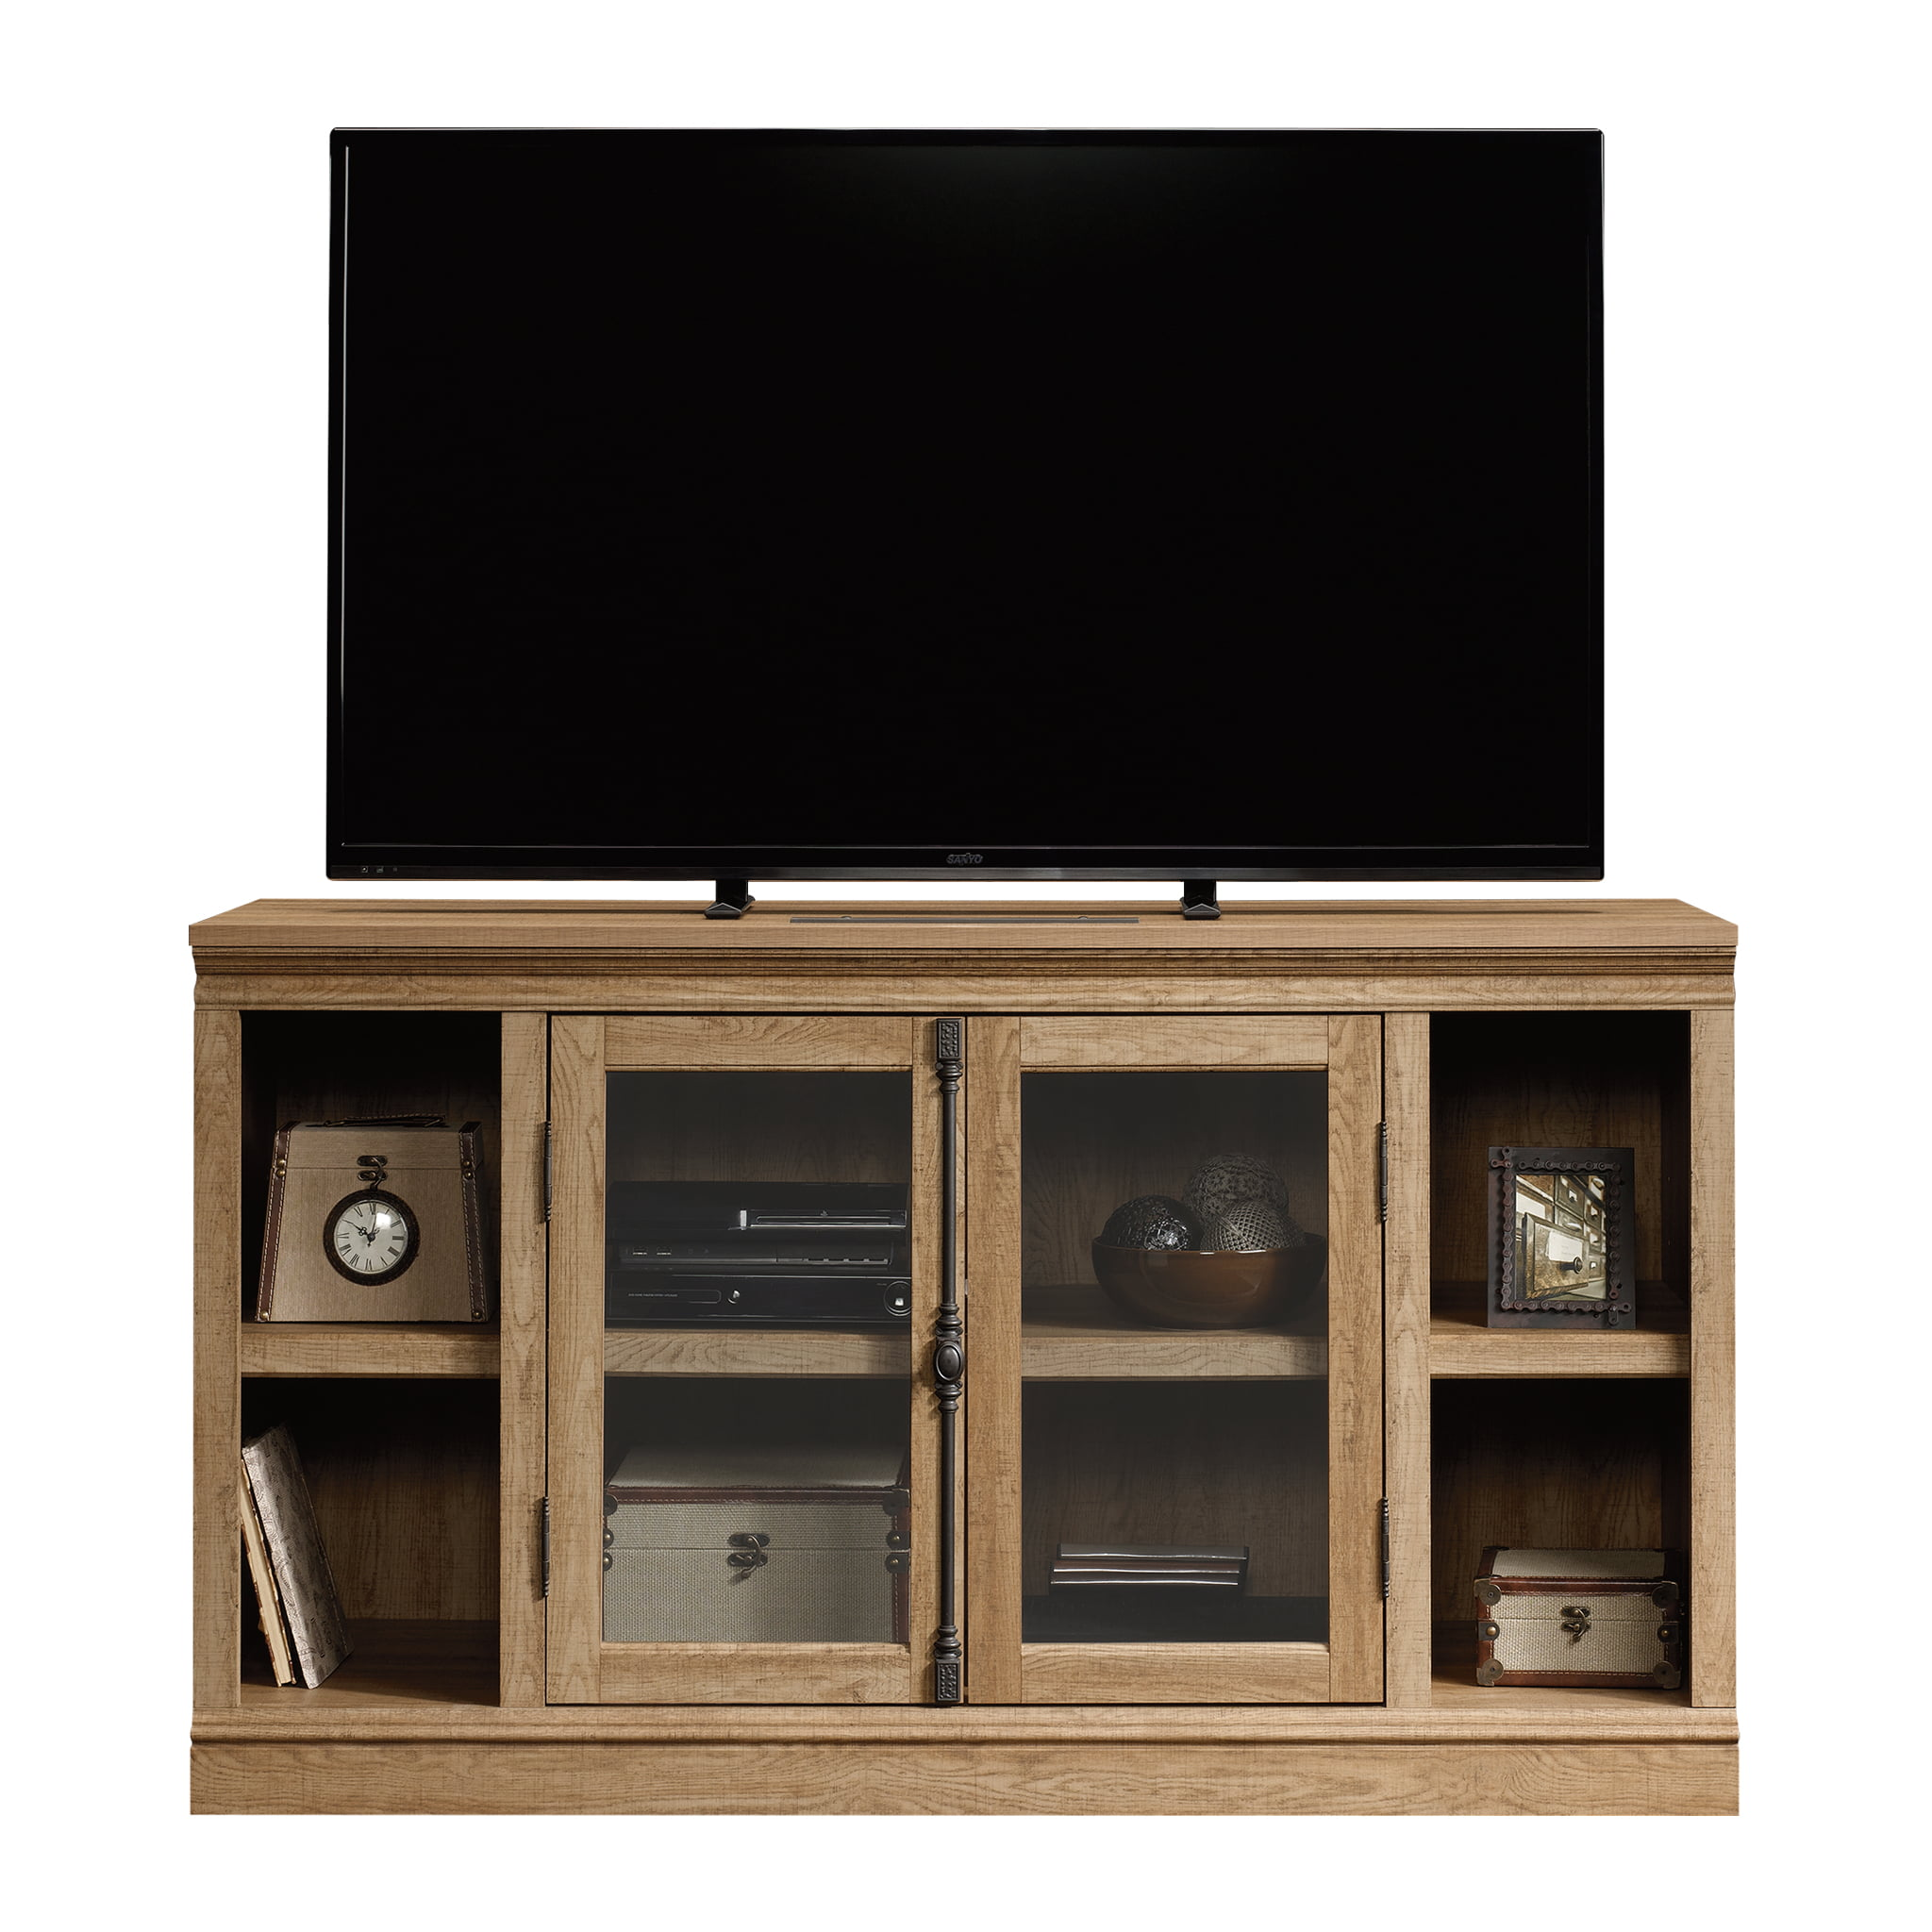 Sauder Barrister Lane Entertainment Credenza for TVs up to 60\ by Sauder